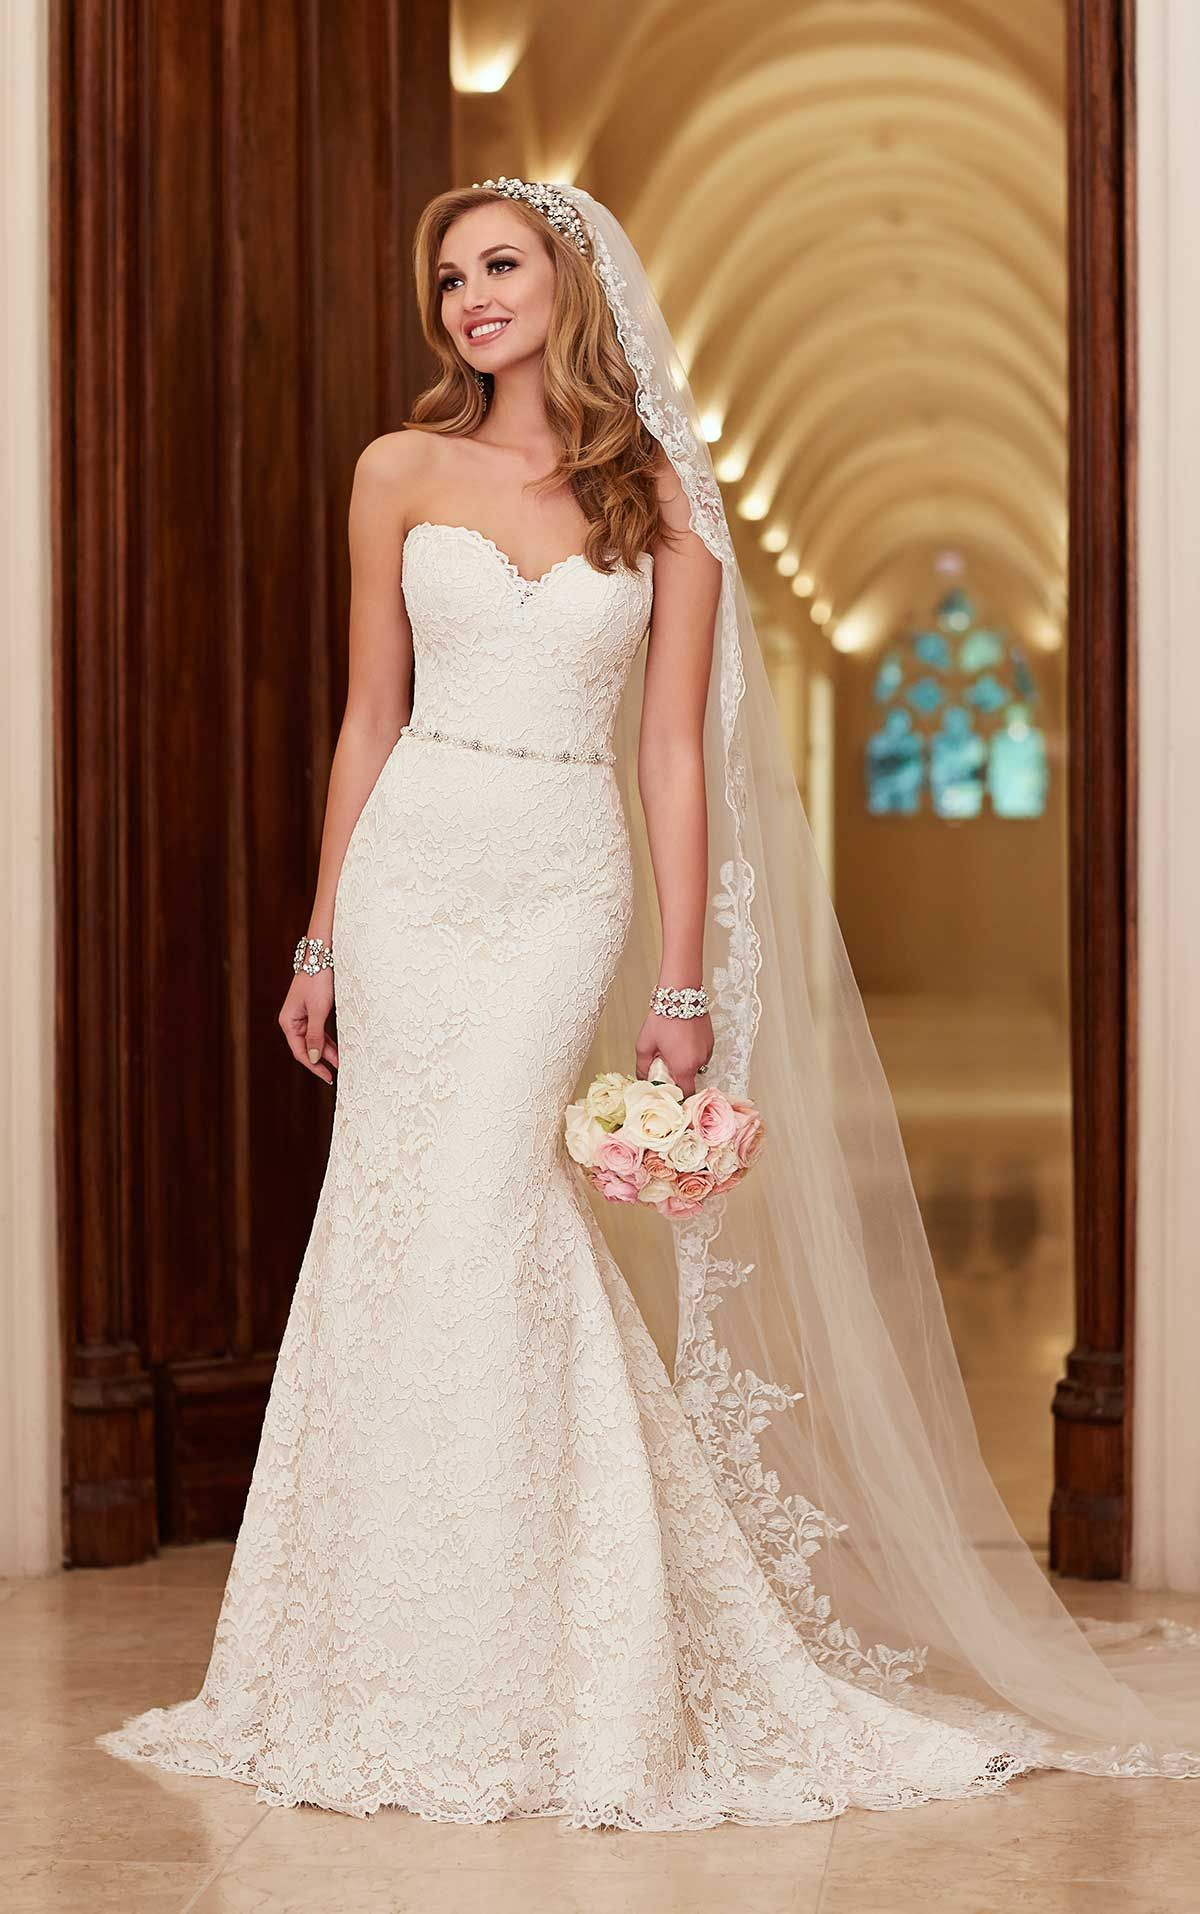 Romantic Lace Over Satin Wedding Dresses Wedding Dresses Lace